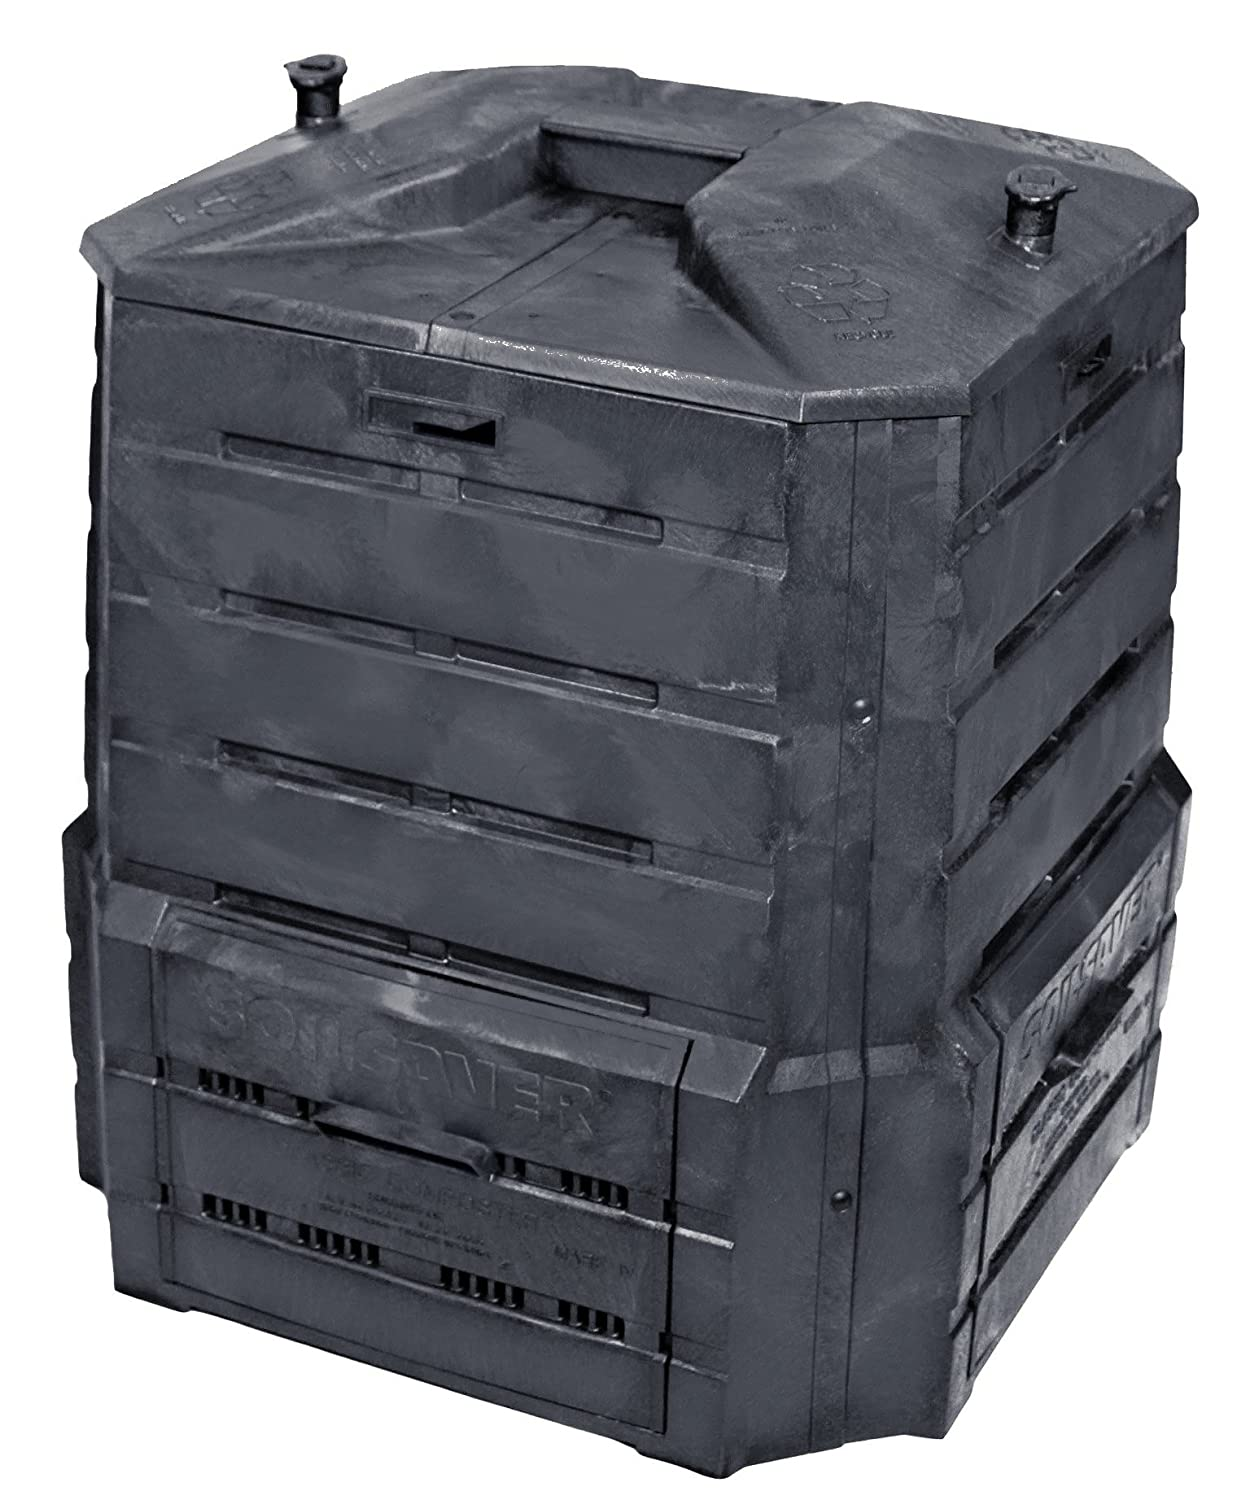 Algreen- Classic Soil Saver Compost Bin